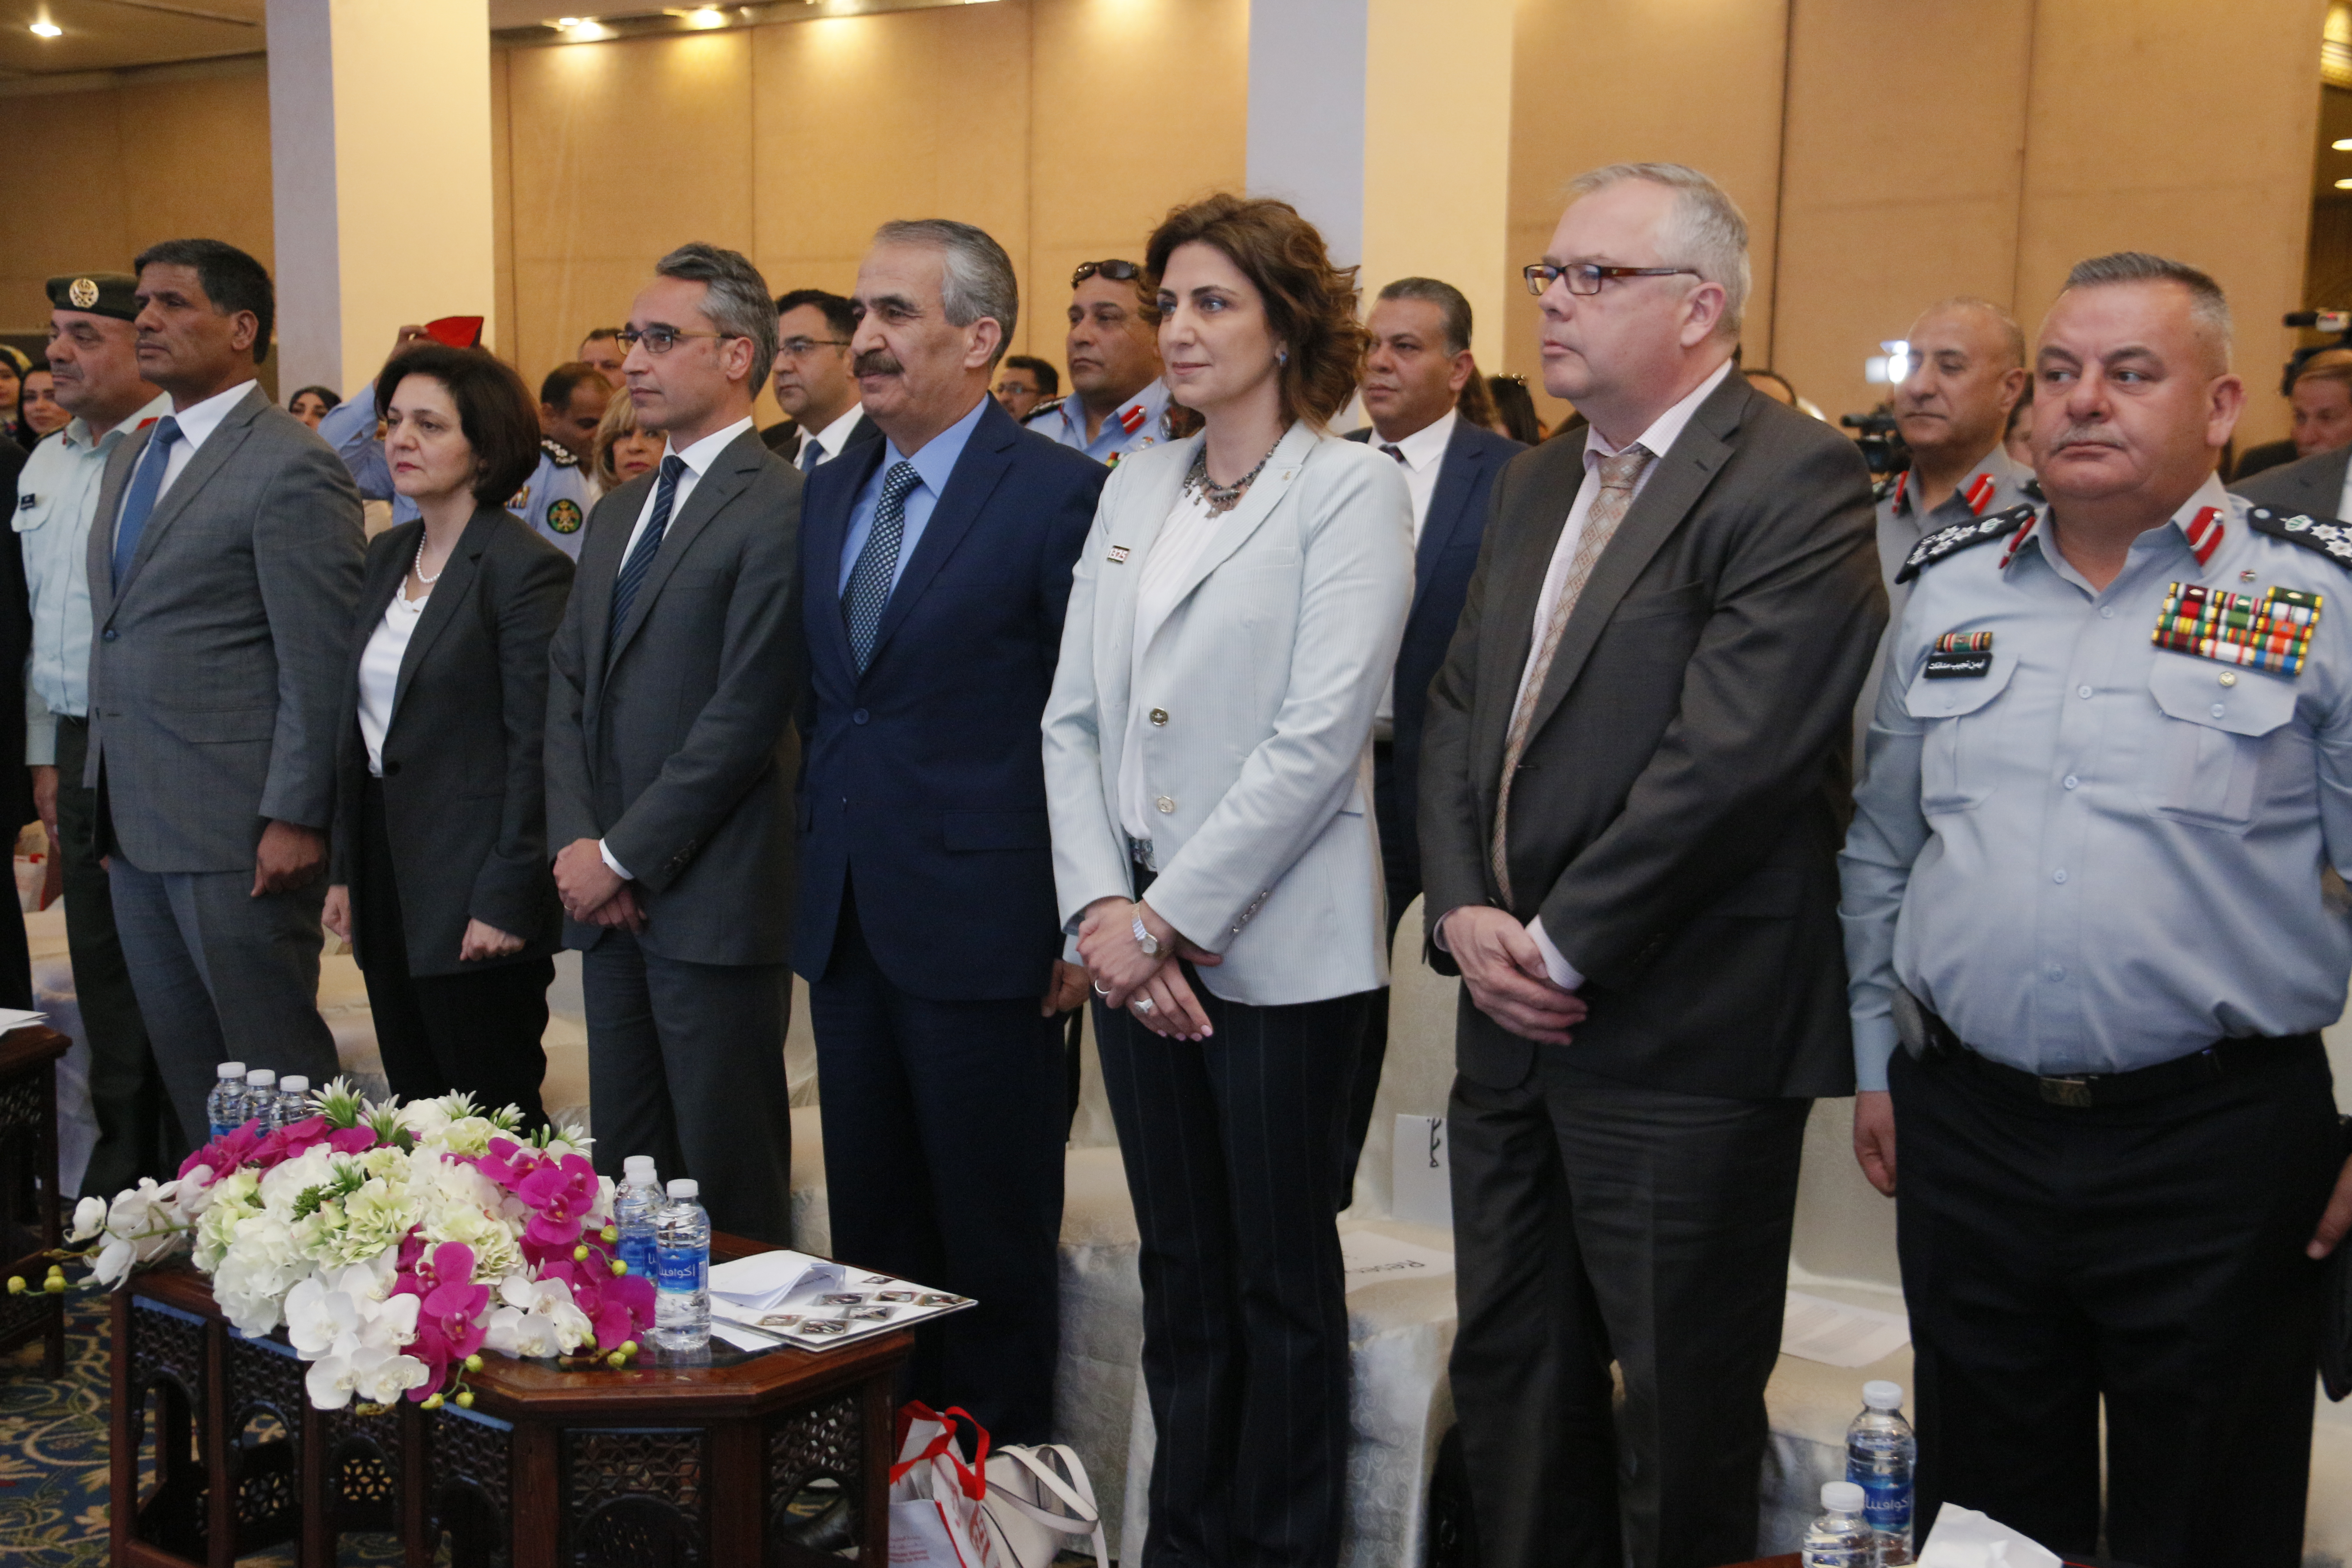 The launch was comprised of official representatives who provided speeches throughout the event including; Representative to the Chairman of the Joint Chief of Staff, Jordanian Armed Forces, Arab Army, L.T. General Mahmoud Freihat; Minister of Social Development, H.E Mrs. Hala Latouf; UN Women Jordan, Country Representative, Mr. Ziad Sheikh; The Minister of Interior Jordan, H.E Mr. Samir Mubaidin; Secretary General of the Jordanian National Committee for Women, Dr. Salma Al-Nims; The Ambassador of the Republic of Finland to Lebanon and Jordan, H.E Mr. Matti Lassila and Director of the Syrian Refugees' Affairs Department, Mr. Ahmad Kfaween.